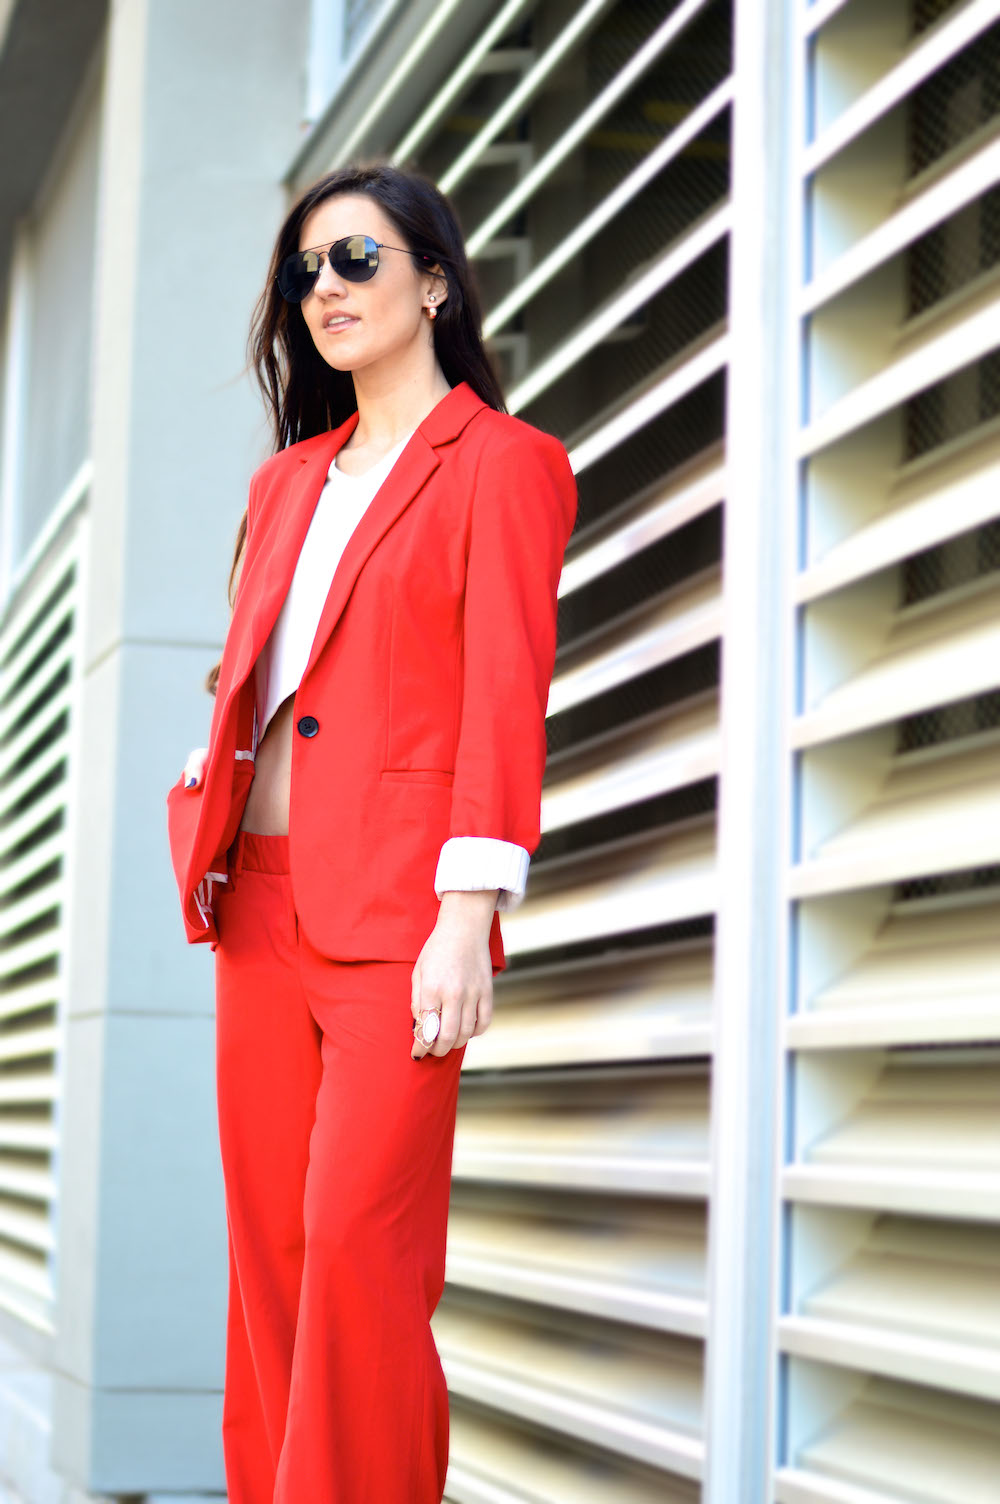 pant suit with crop top